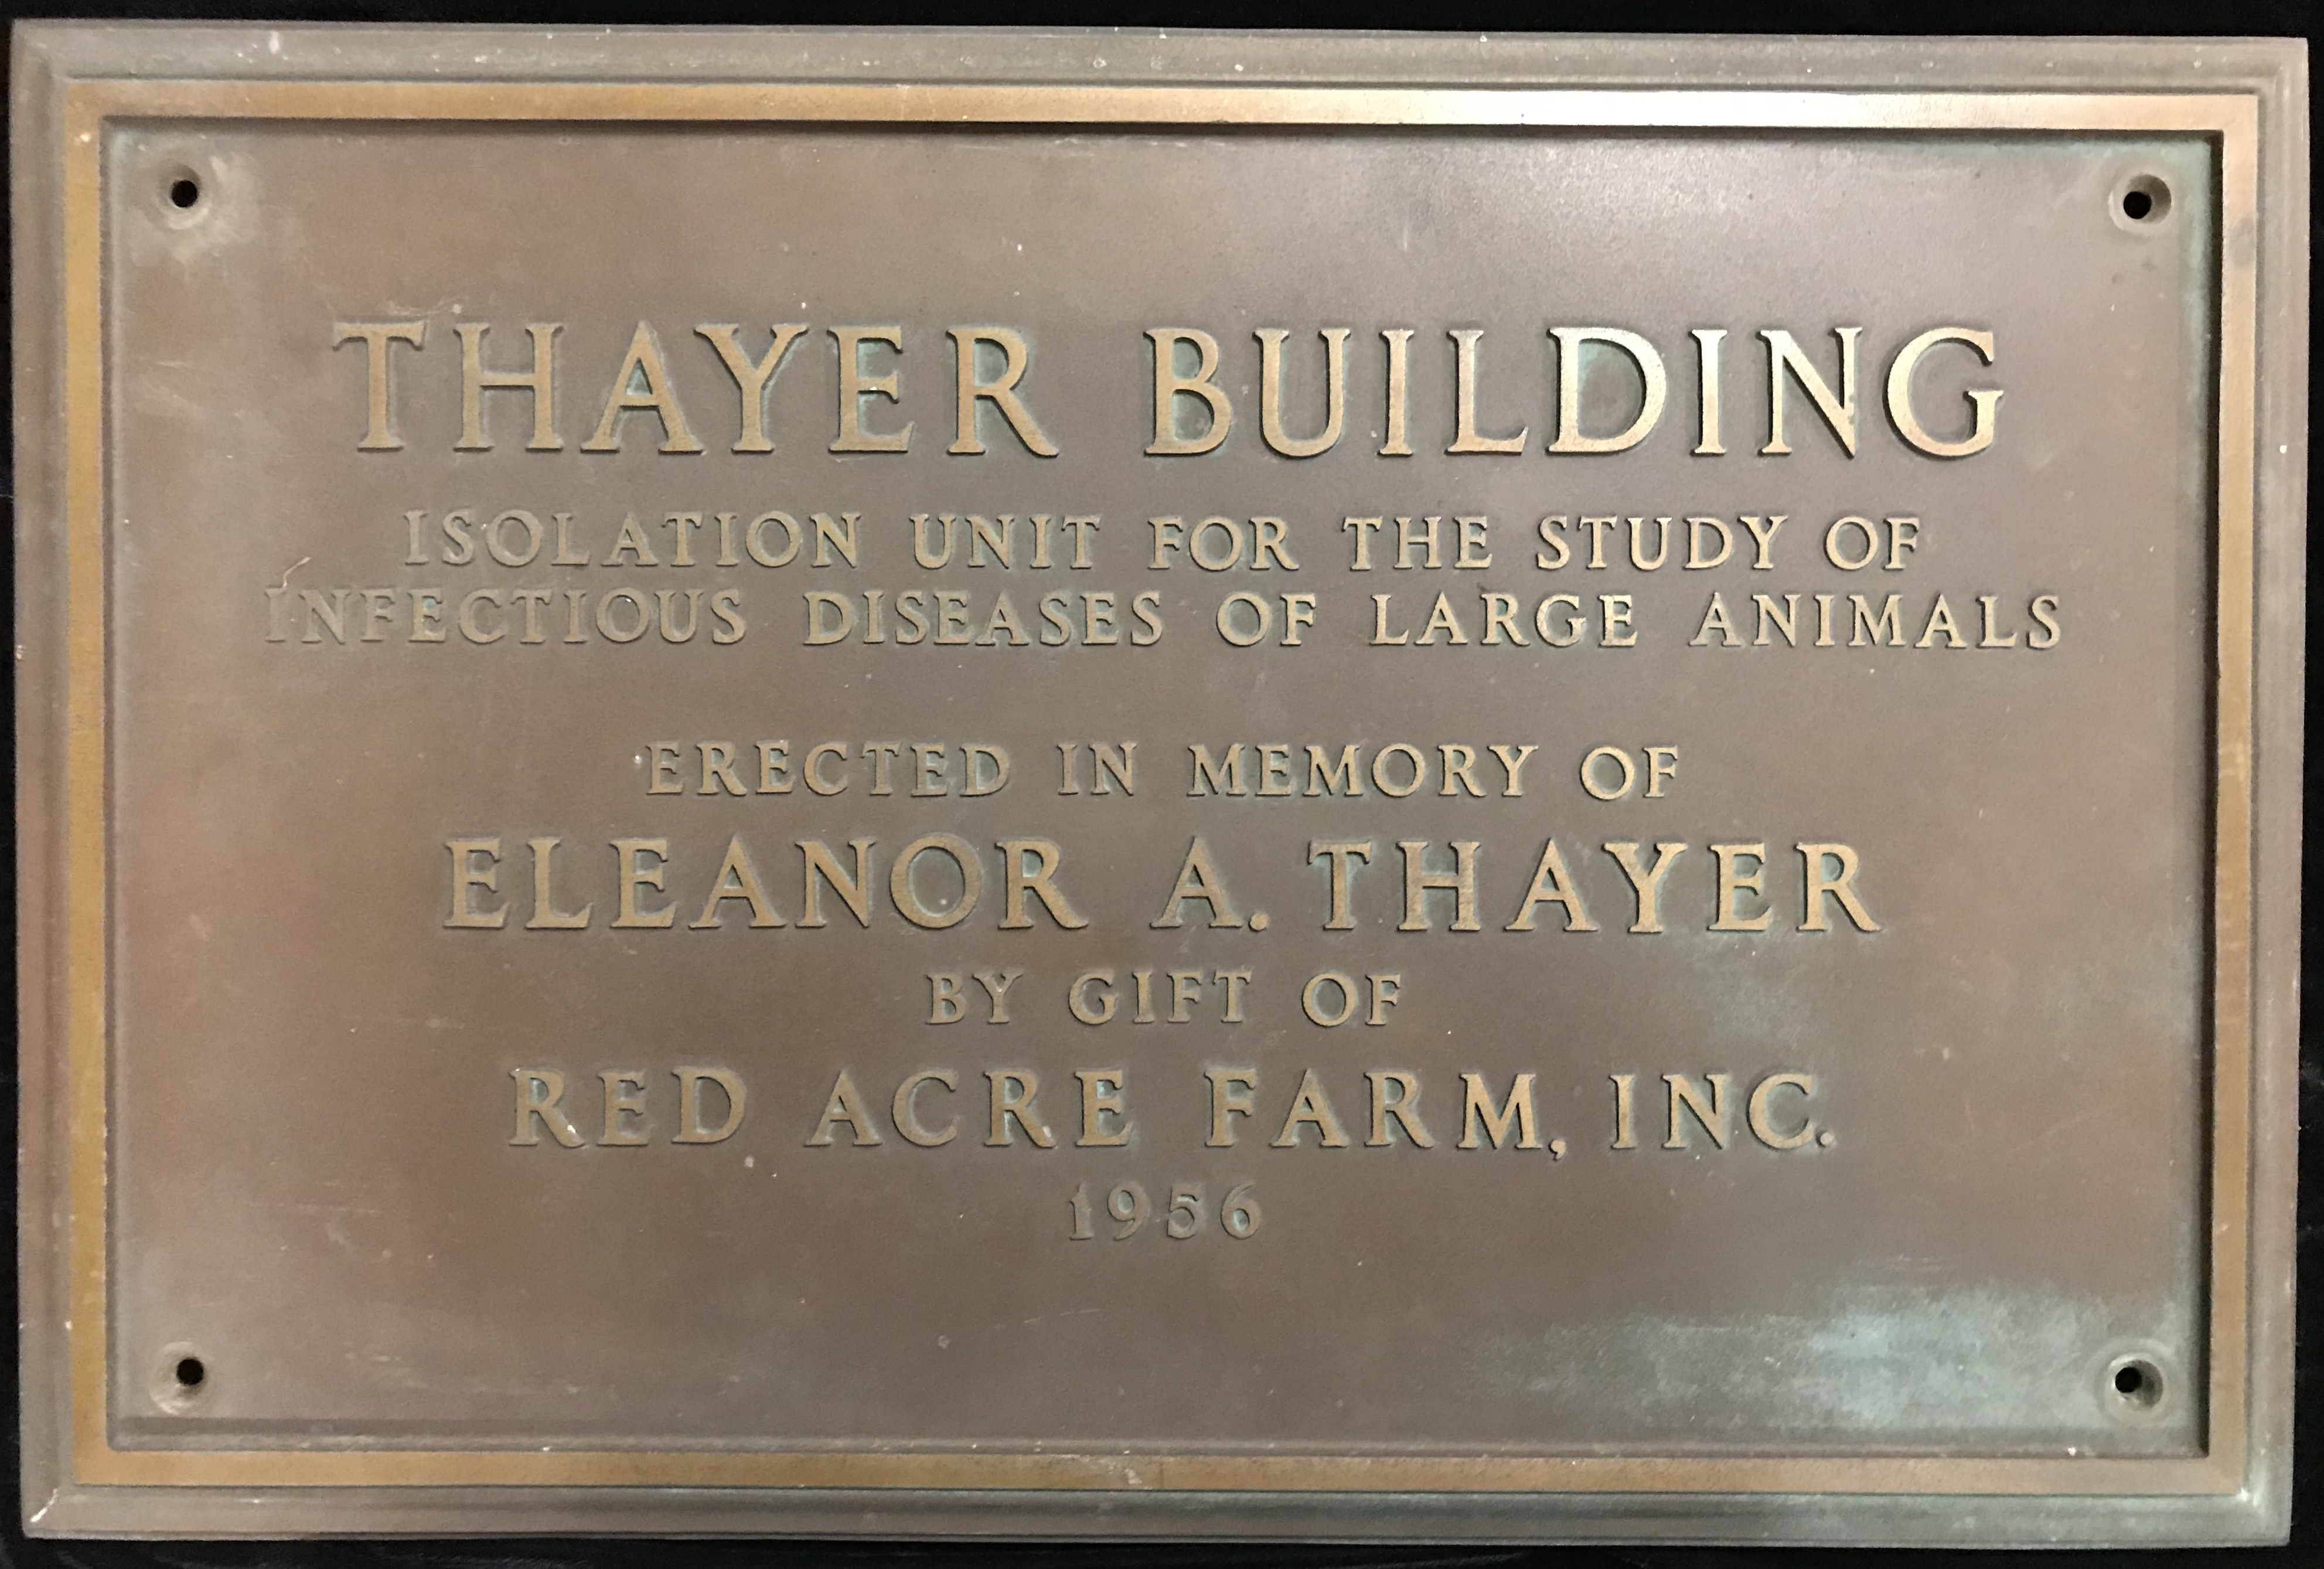 Thayer Building, dedication plaque.